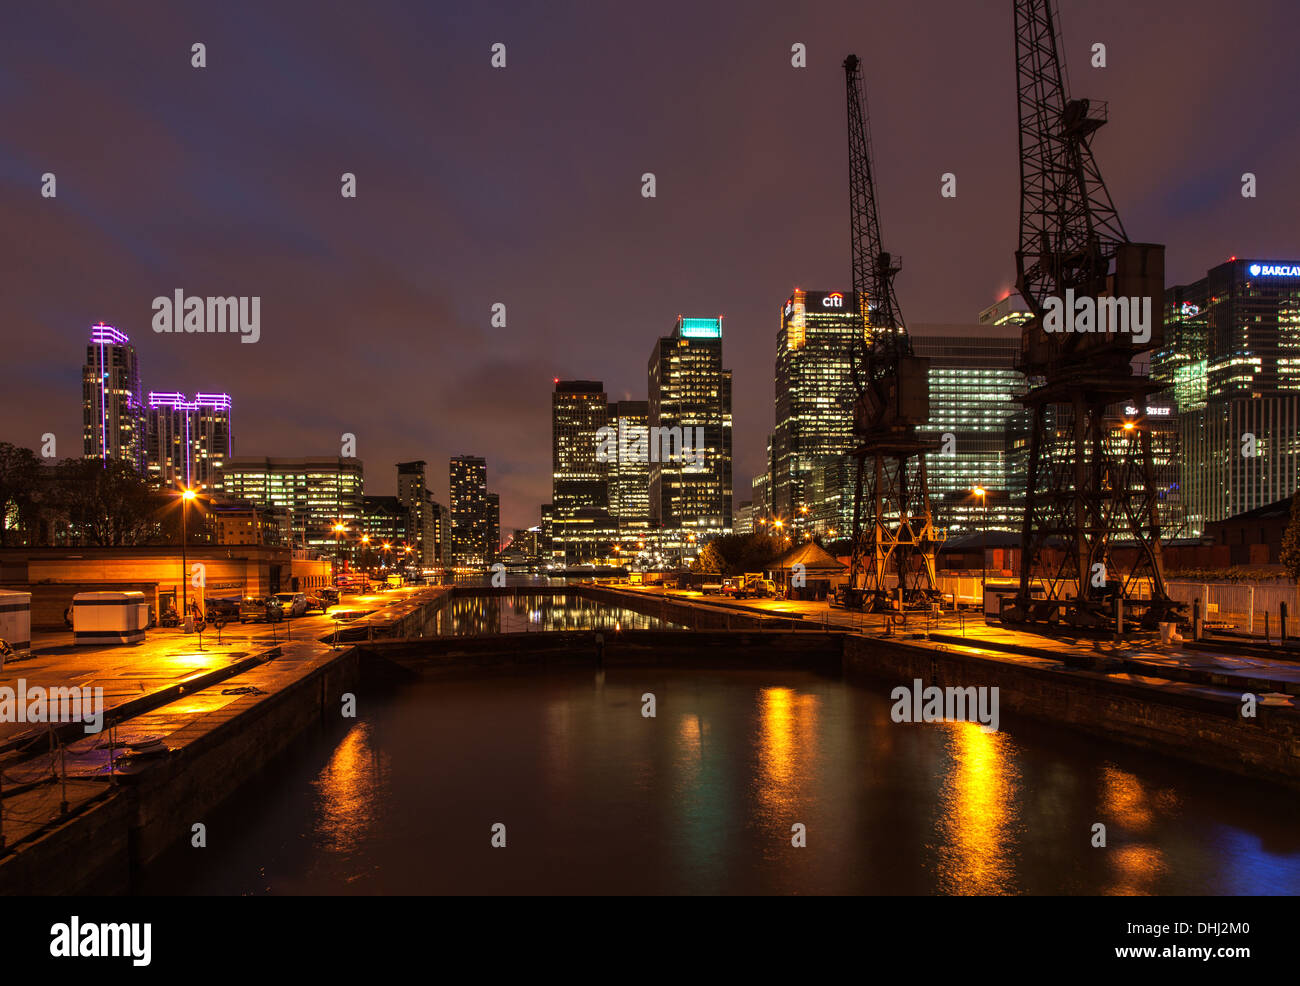 The Buildings of Canary Wharf at Night - Stock Image